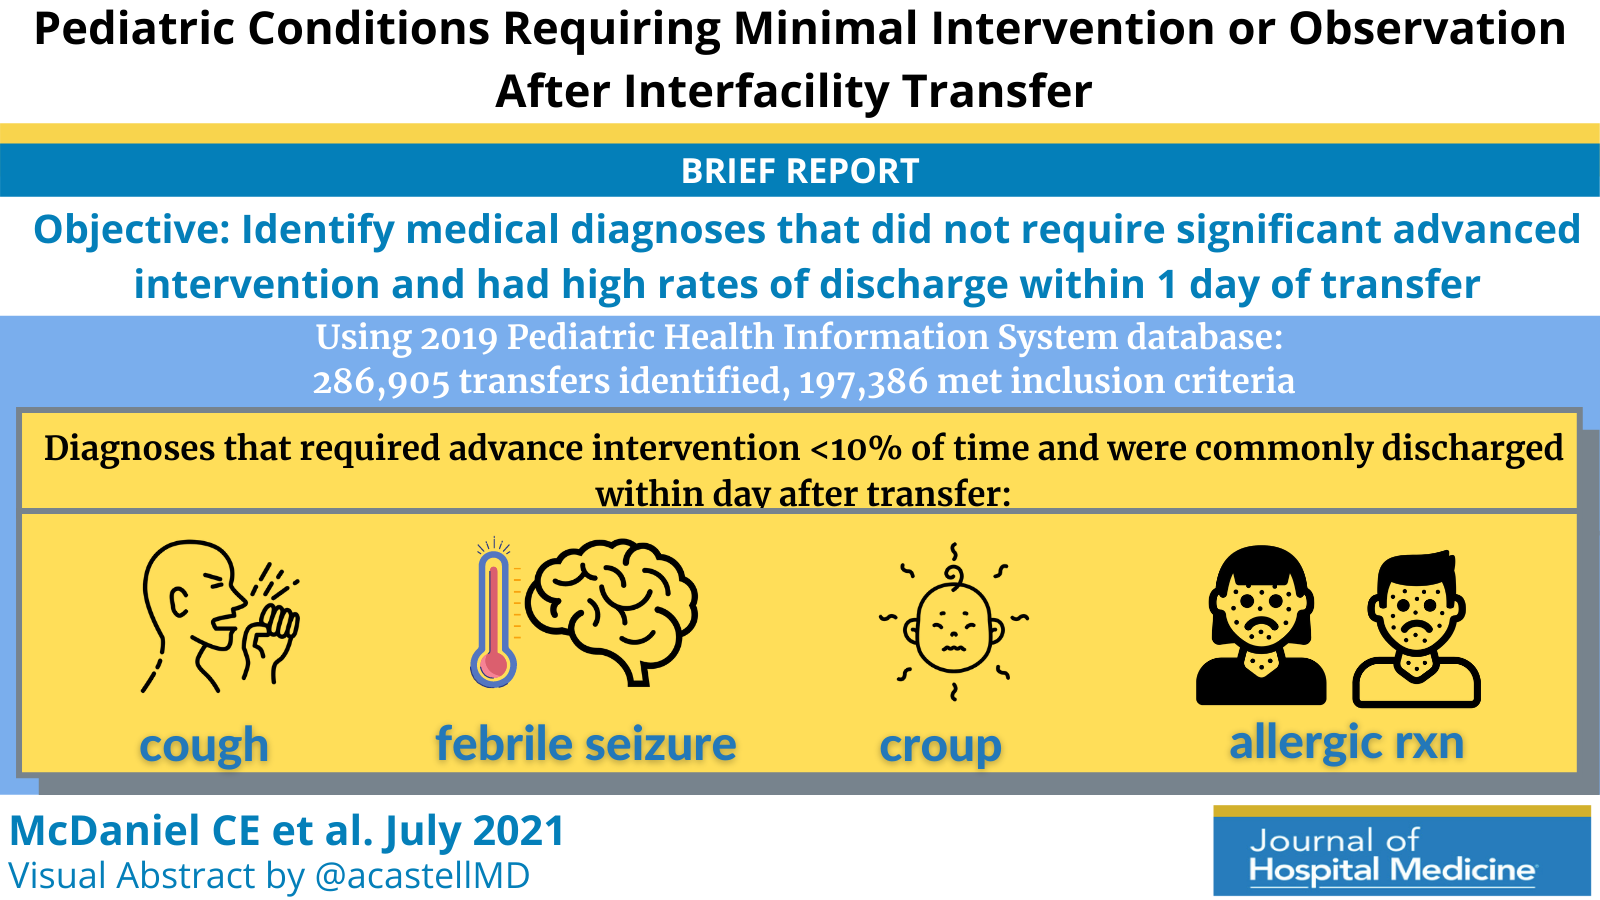 Pediatric Conditions Requiring Minimal Intervention or Observation After Interfacility Transfer